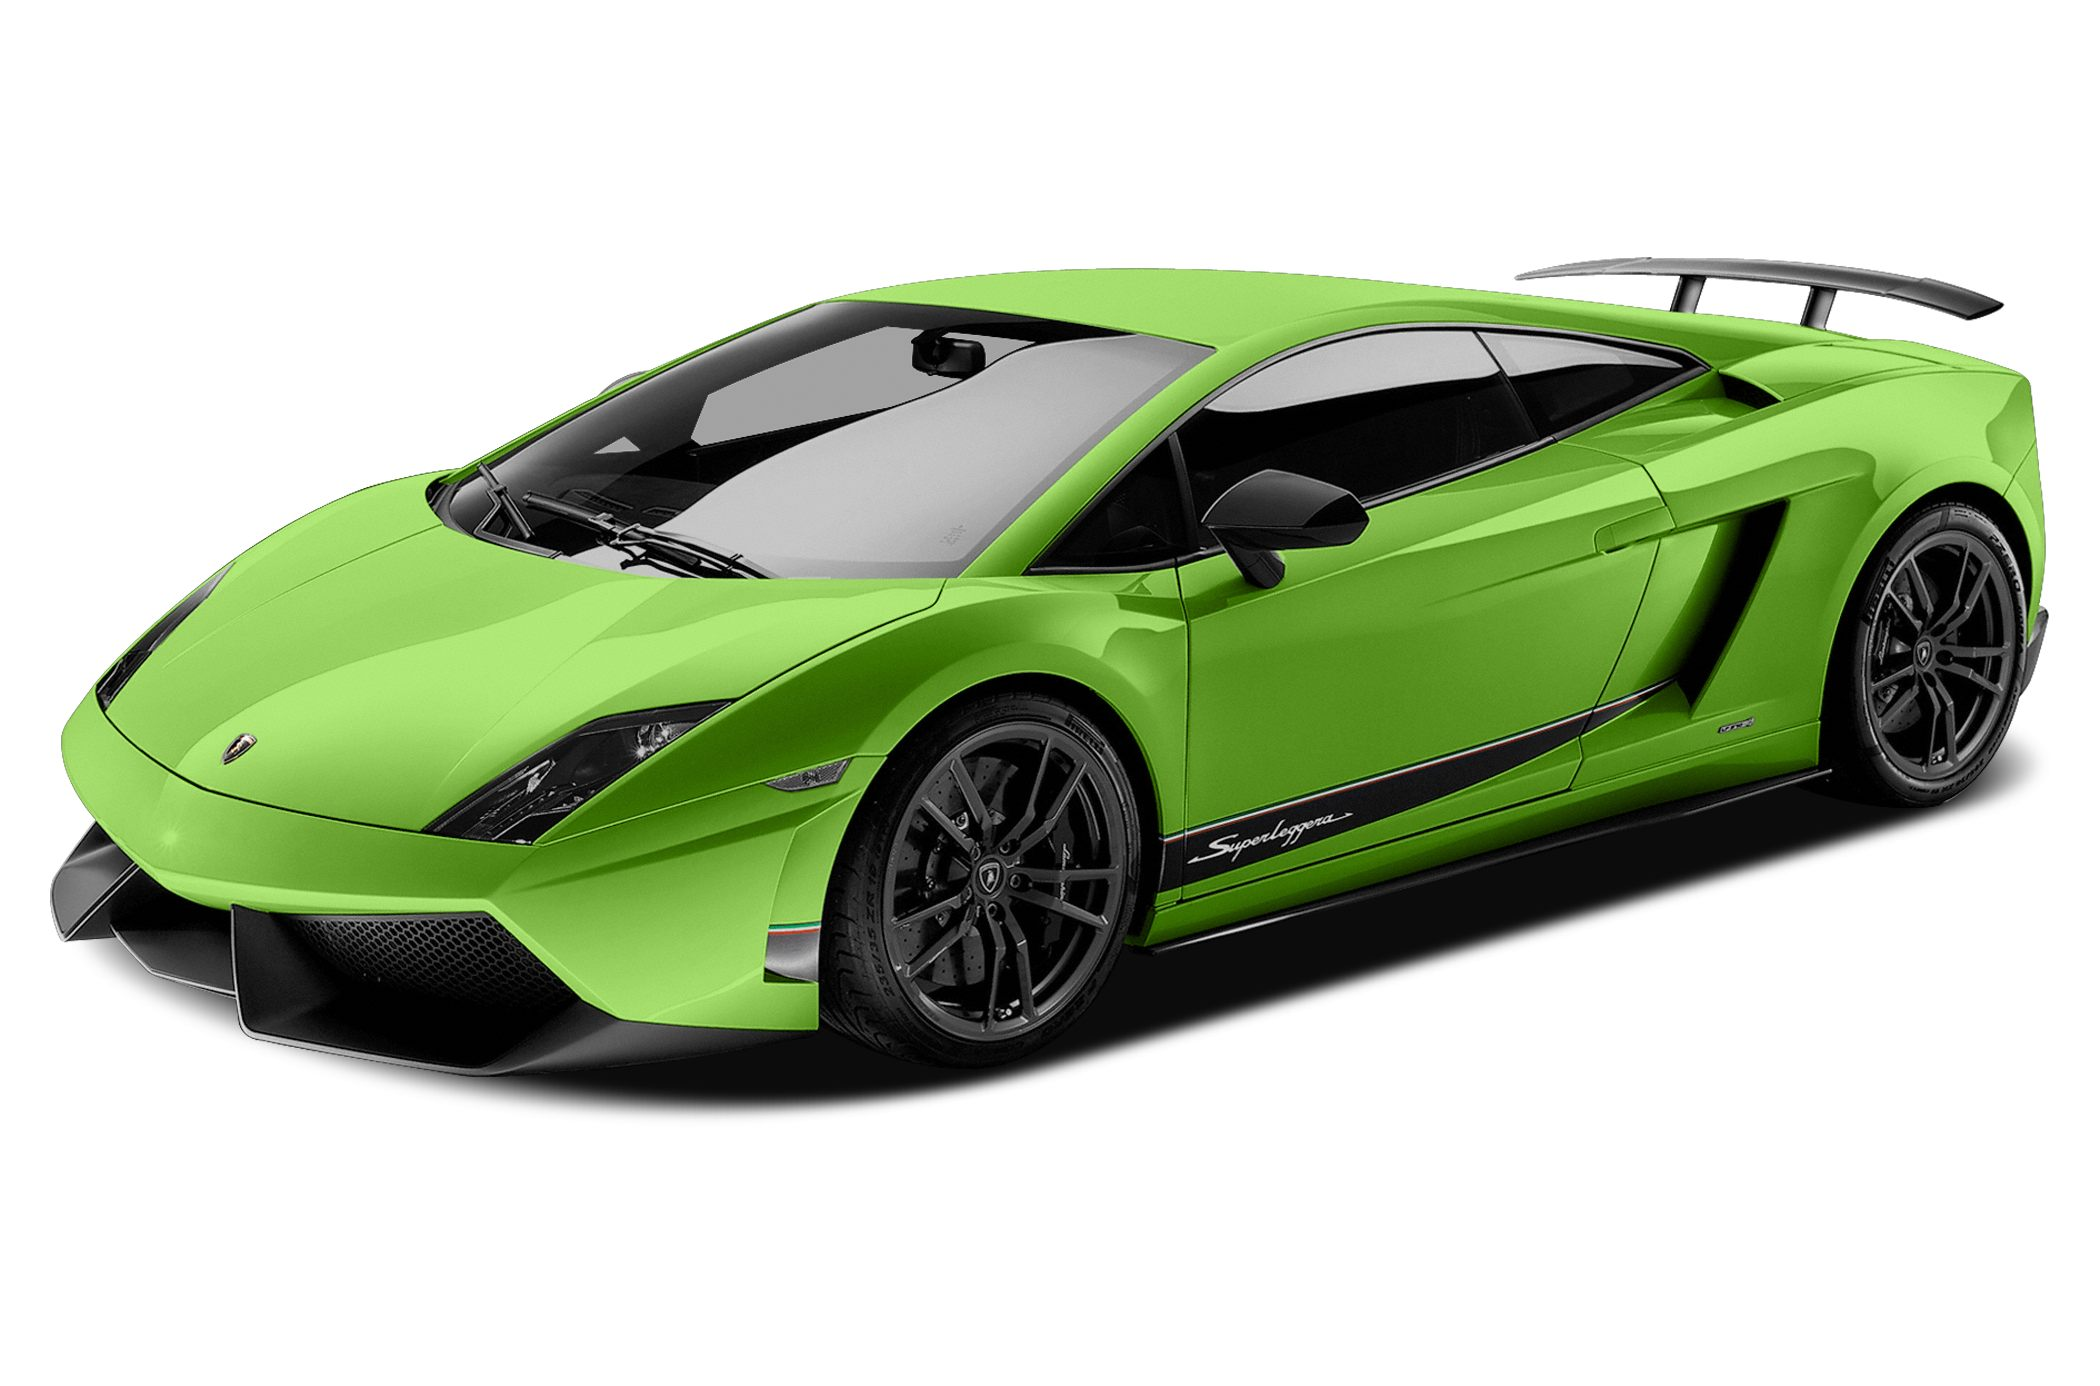 2013 Lamborghini Gallardo Specs And Prices